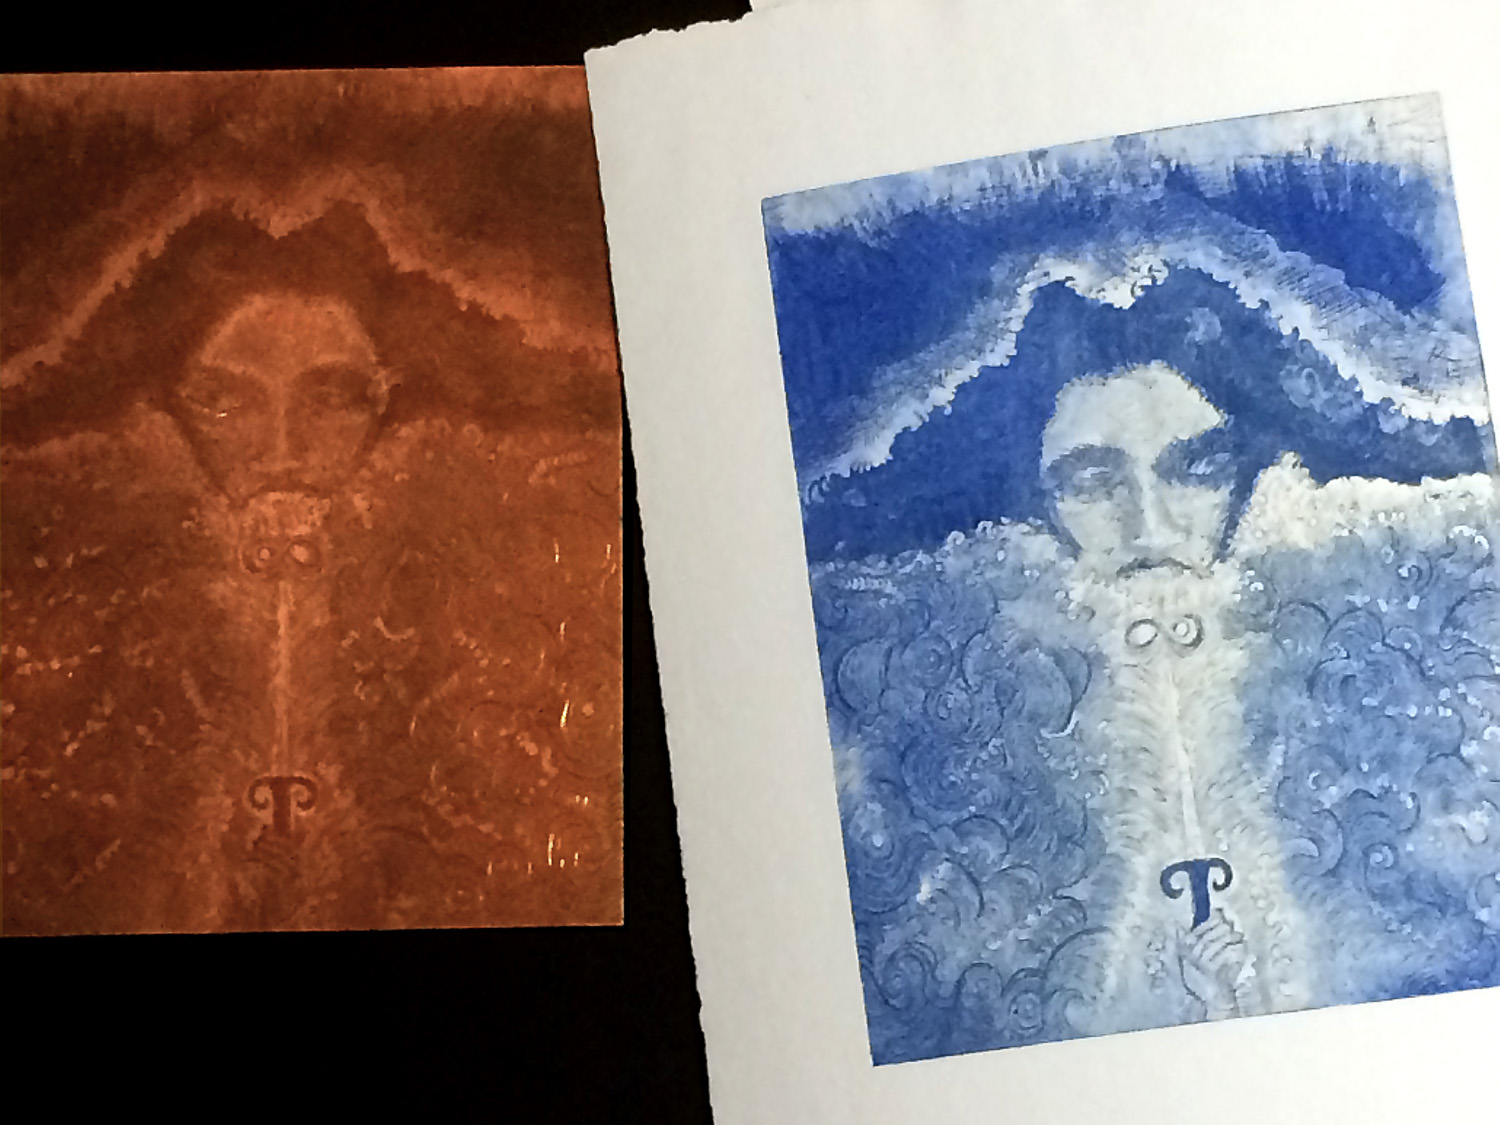 On the left is a copperplate etching by   Eric K. Lerne r  and next to it a print on paper made by impressing the paper onto the inked plate.